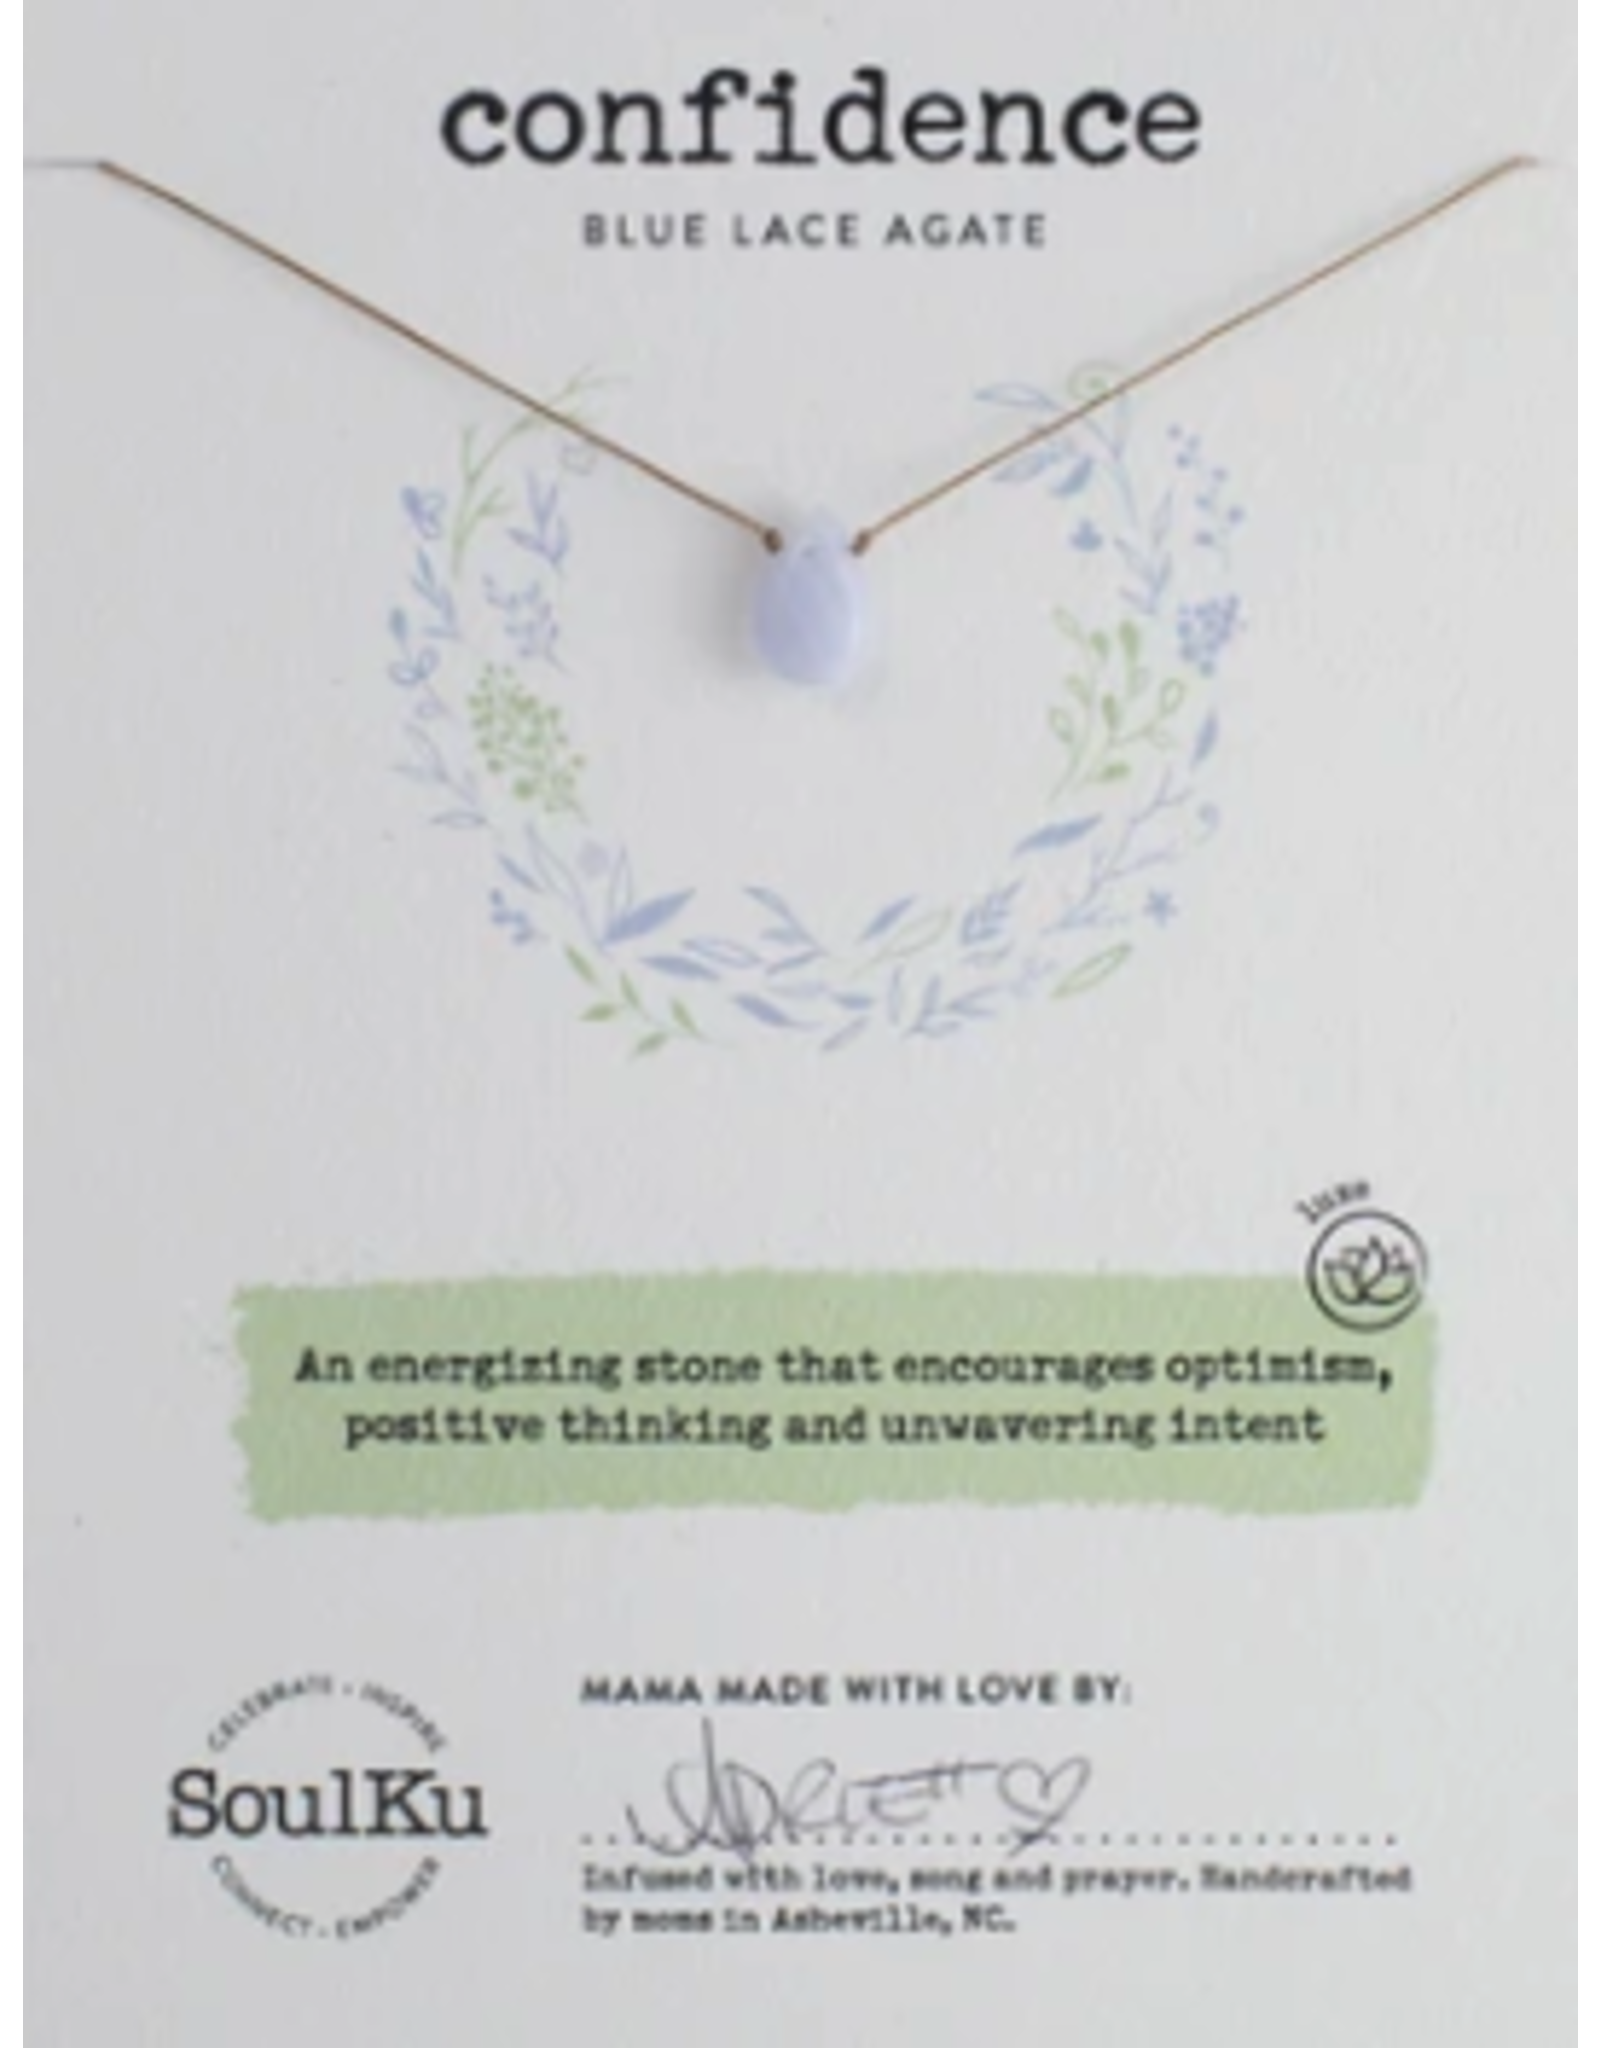 Blue Lace Agate Necklace For Confidence - SoulKu